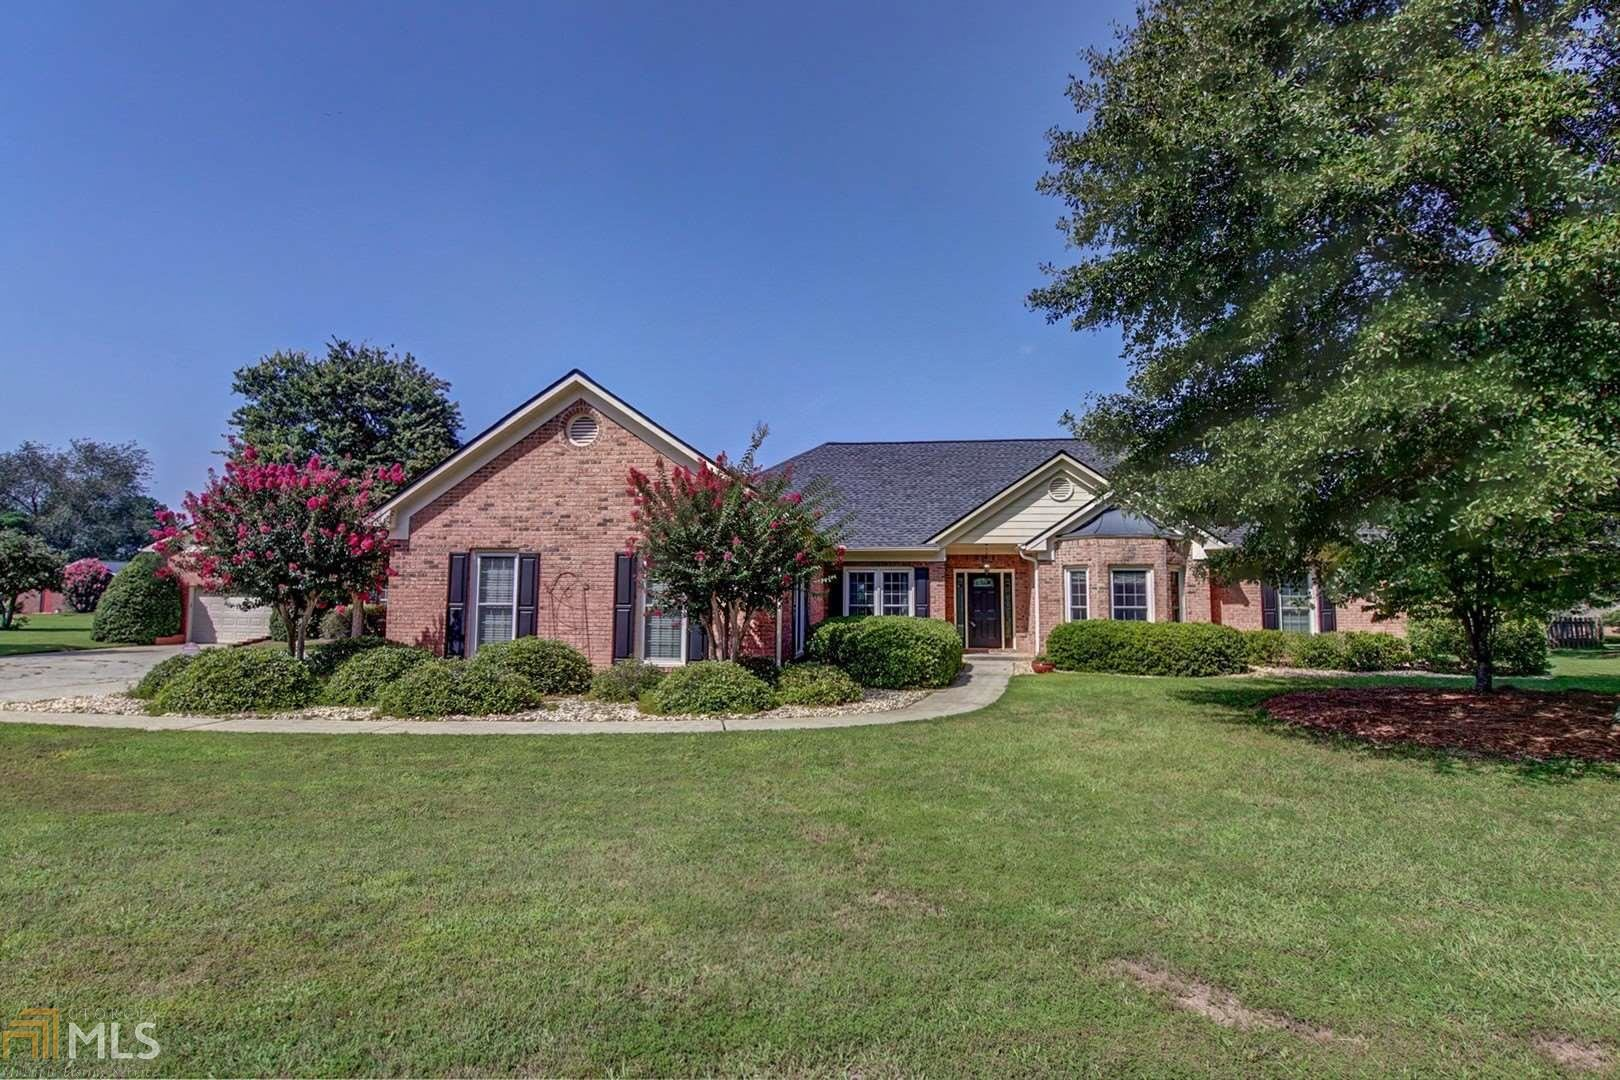 4 Teal Ct, Locust Grove, GA 30248 - #: 8851948